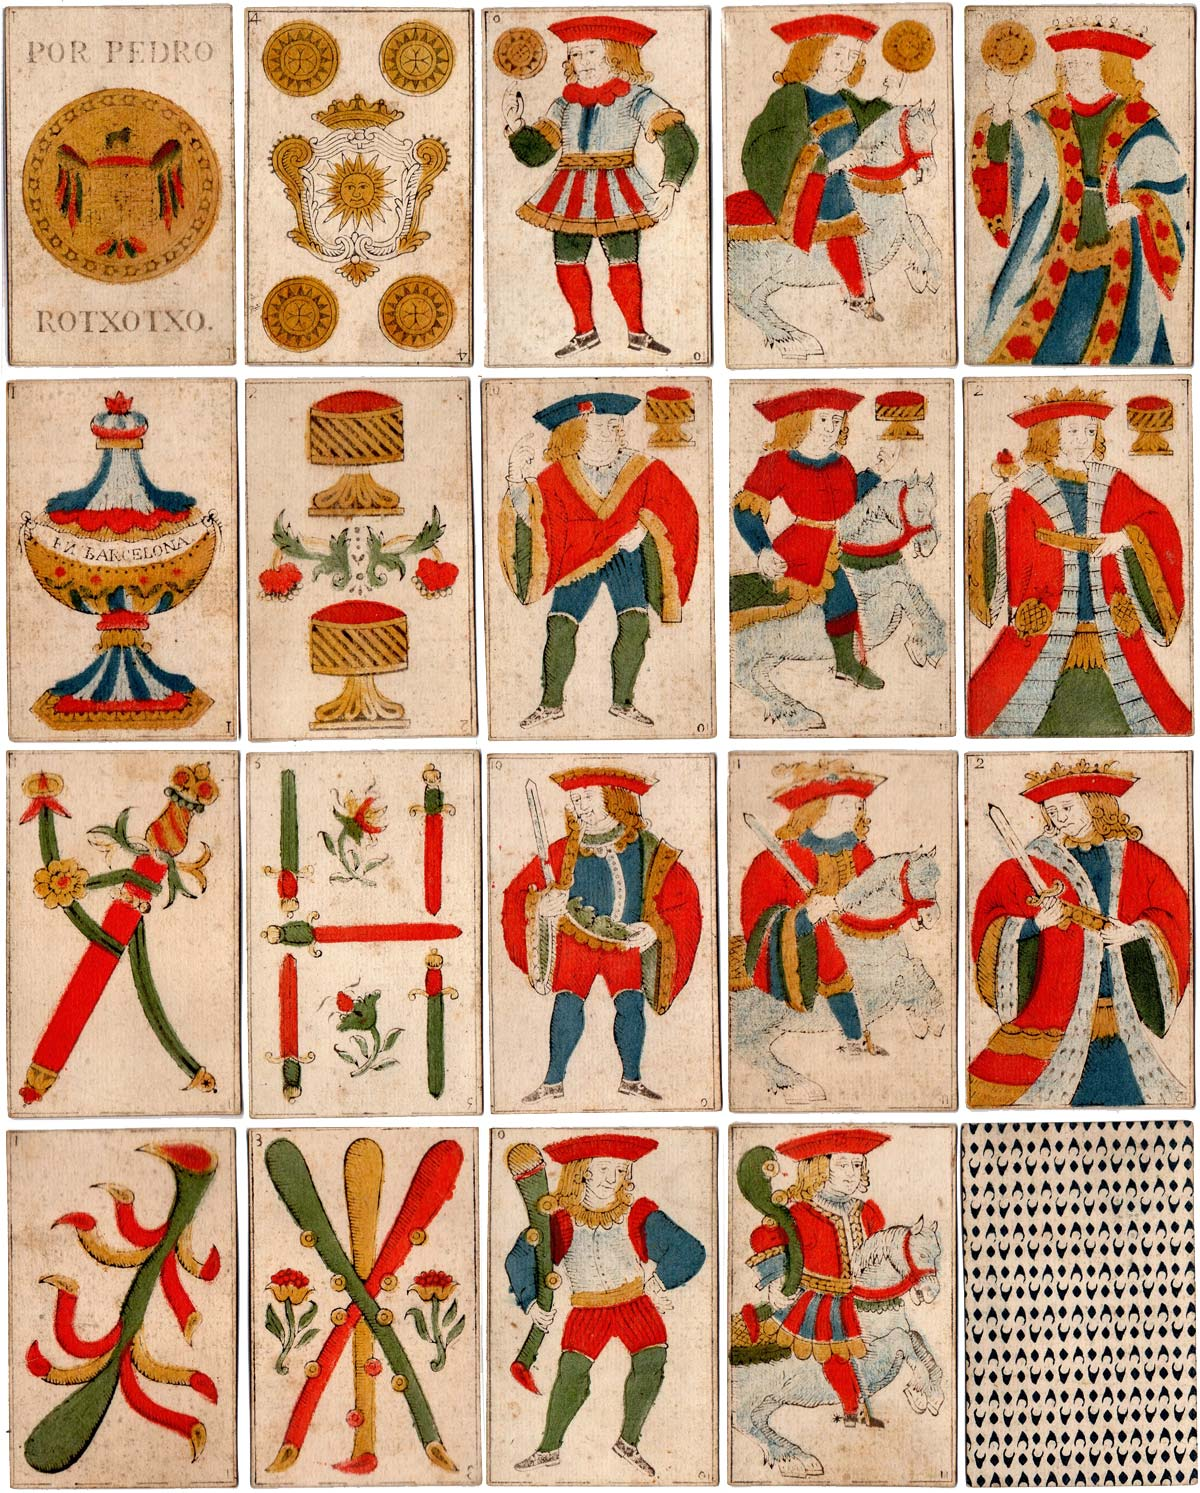 standard Spanish National pattern by Pedro Rotxotxo, Barcelona c.1800